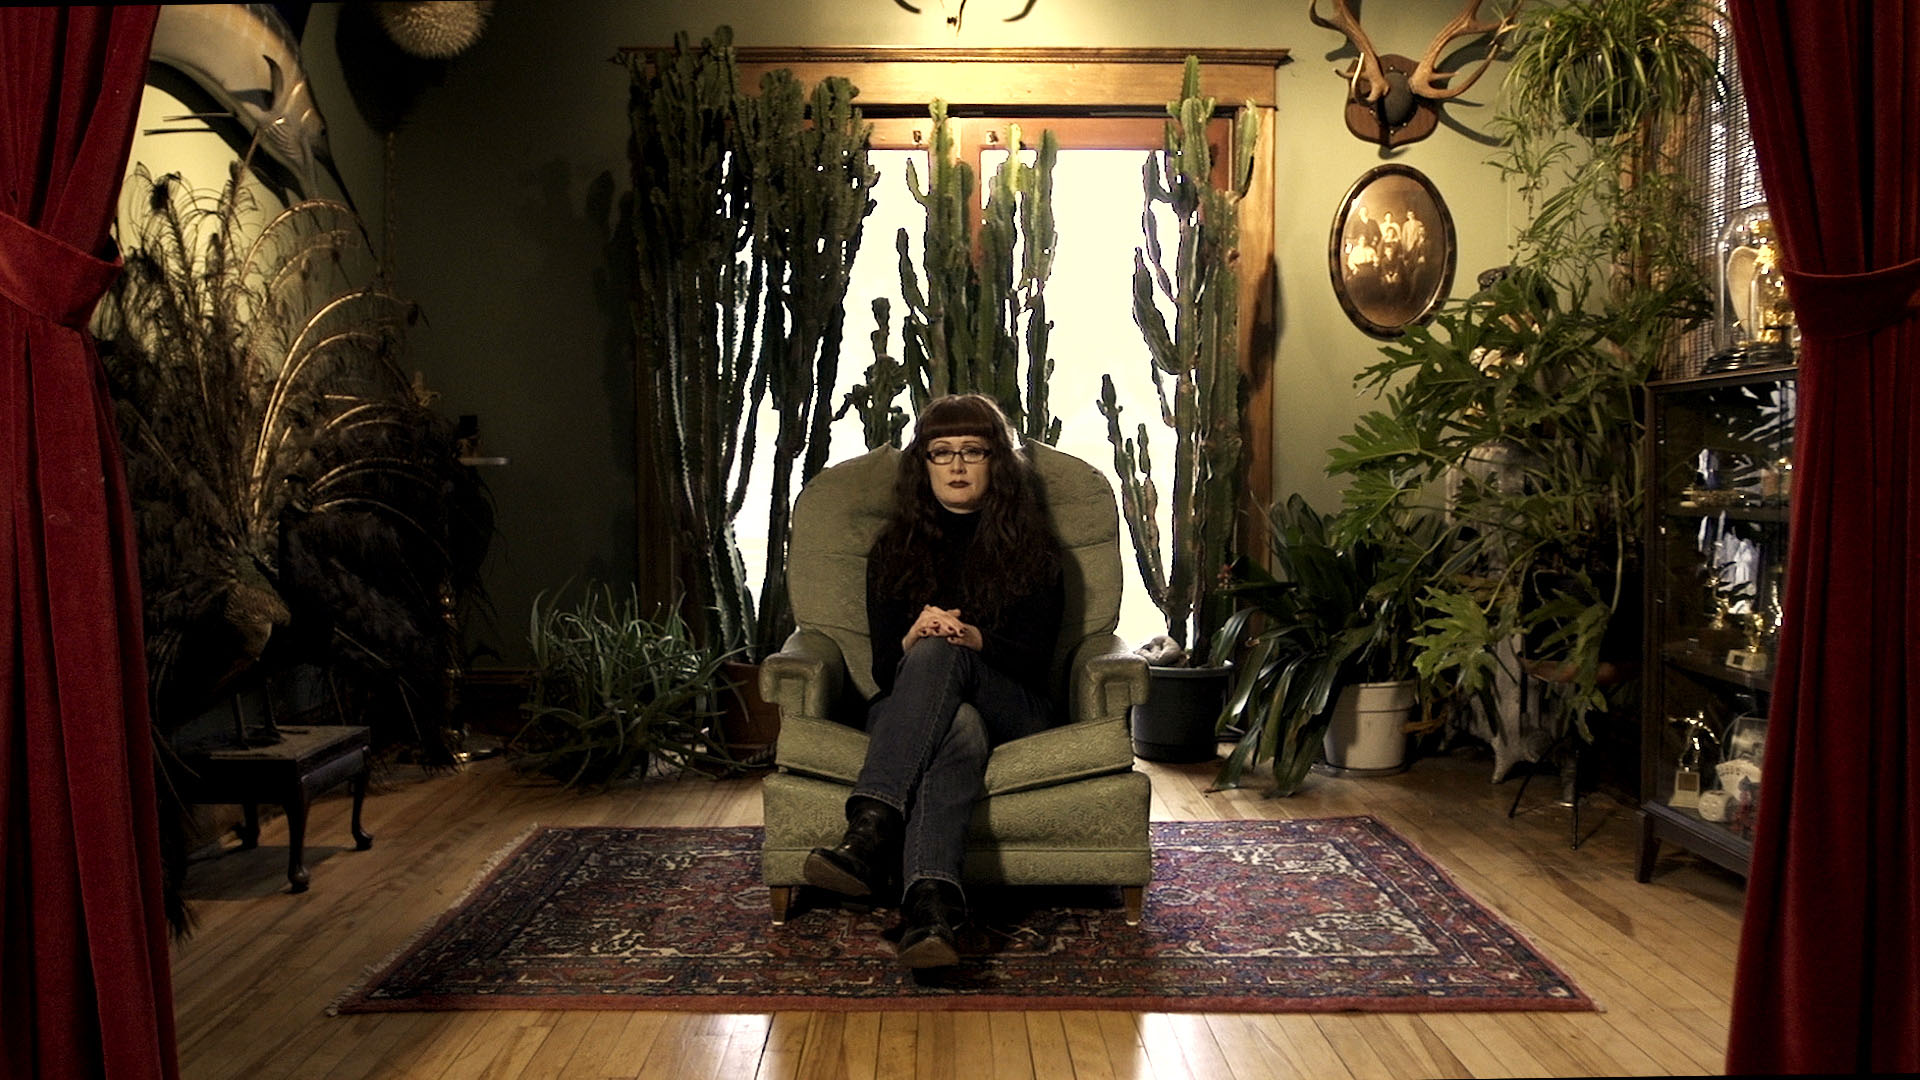 Watch Sarina Brewer: Rogue Taxidermy Sculptor